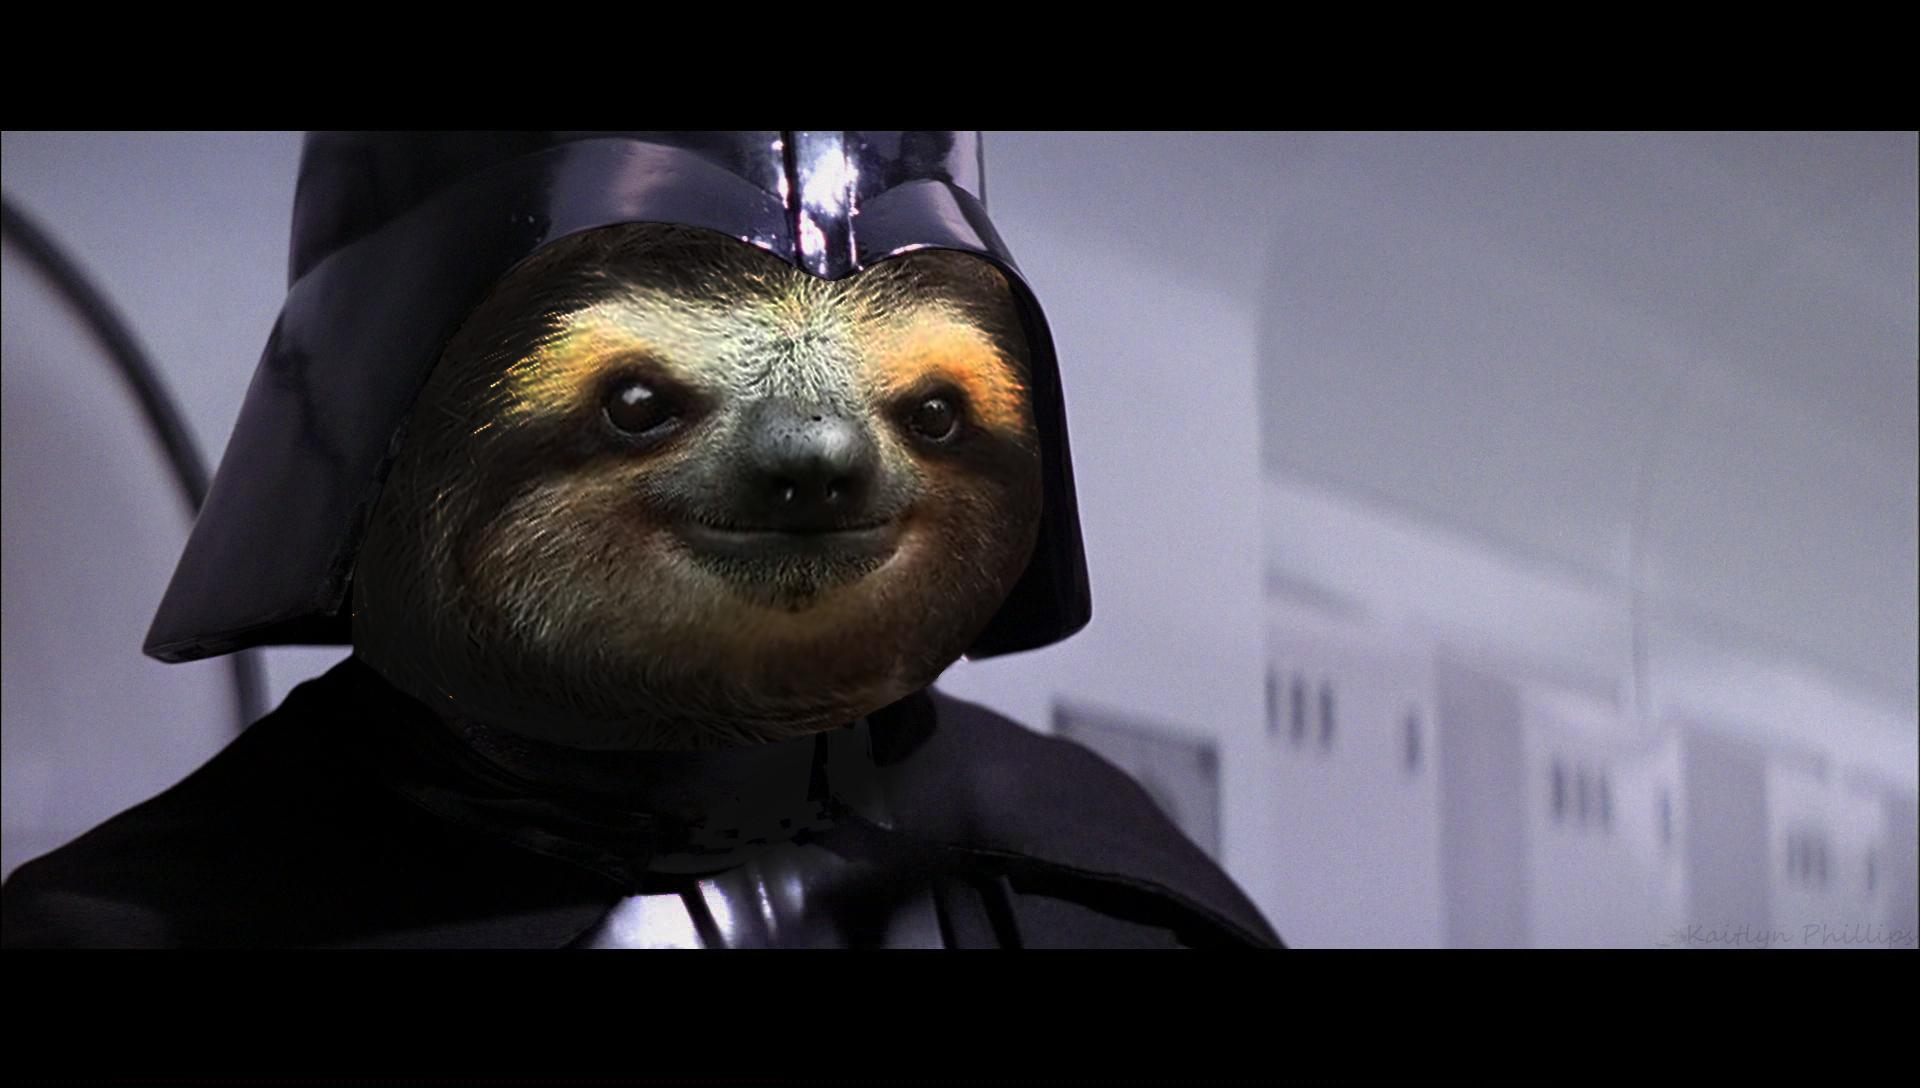 Sloth Vader a wallpaper I made for my boyfriend   Imgur 1920x1088